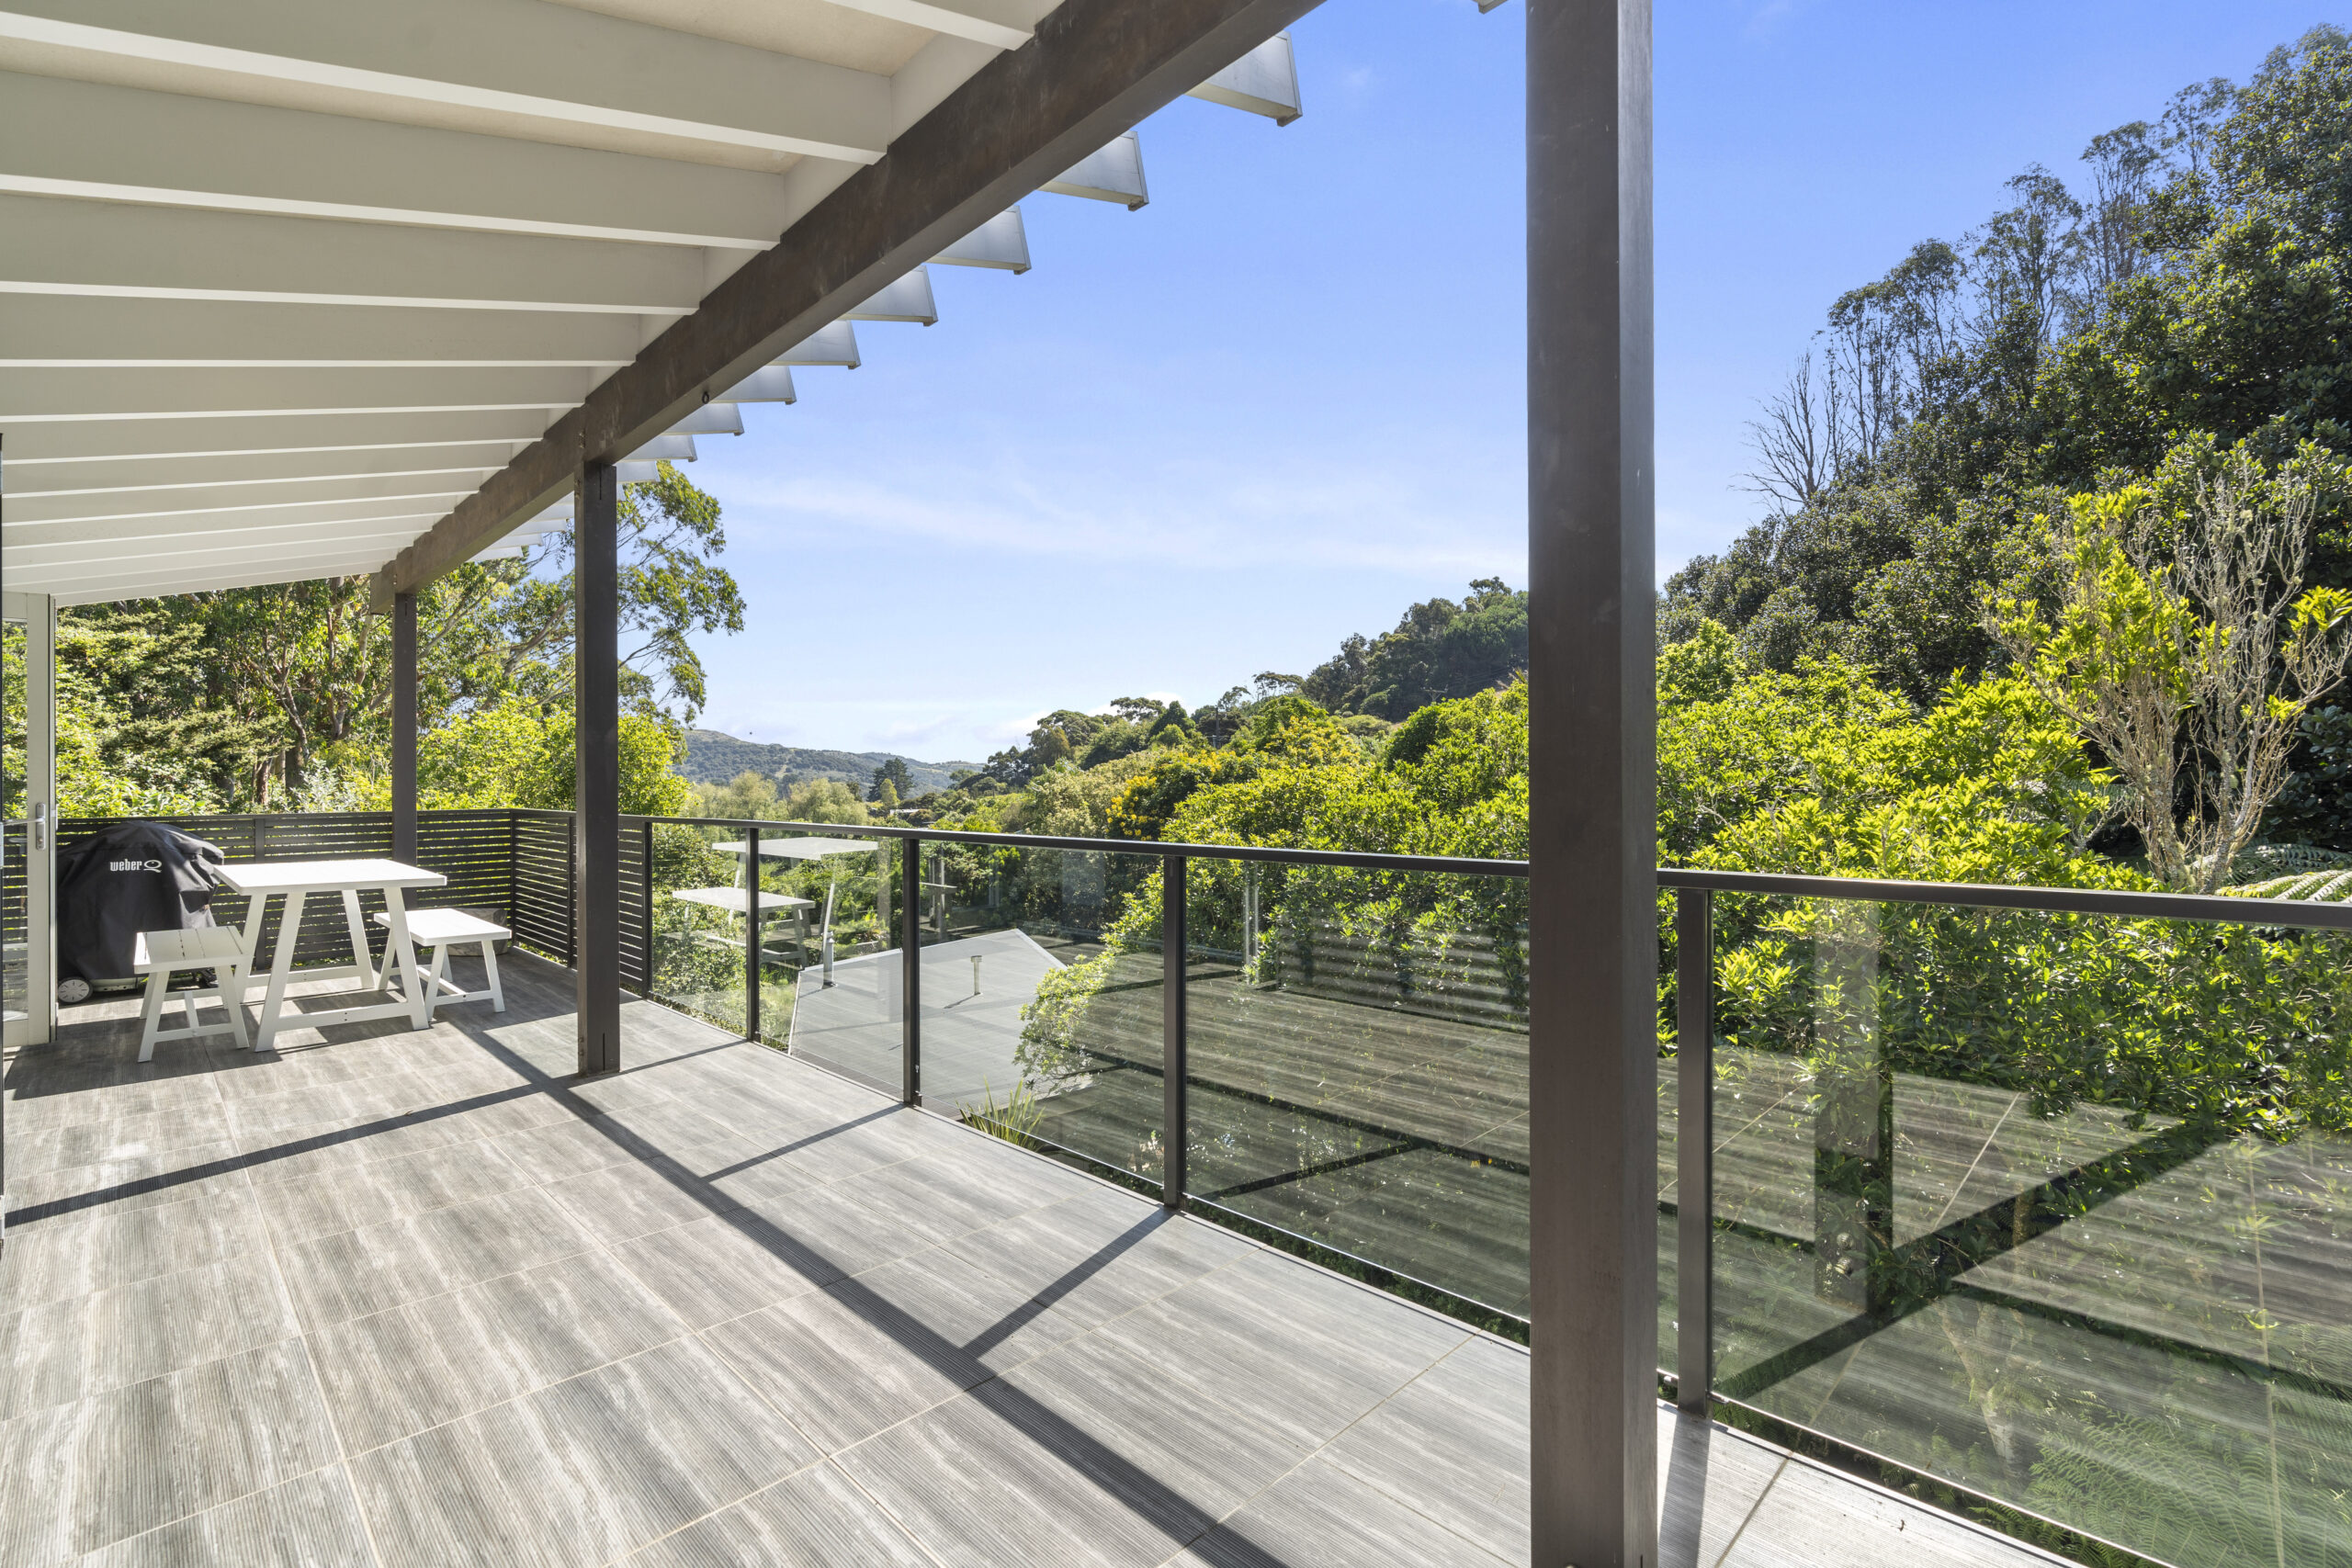 4.-Top-verandah-view-out-to-bush-scaled.jpg